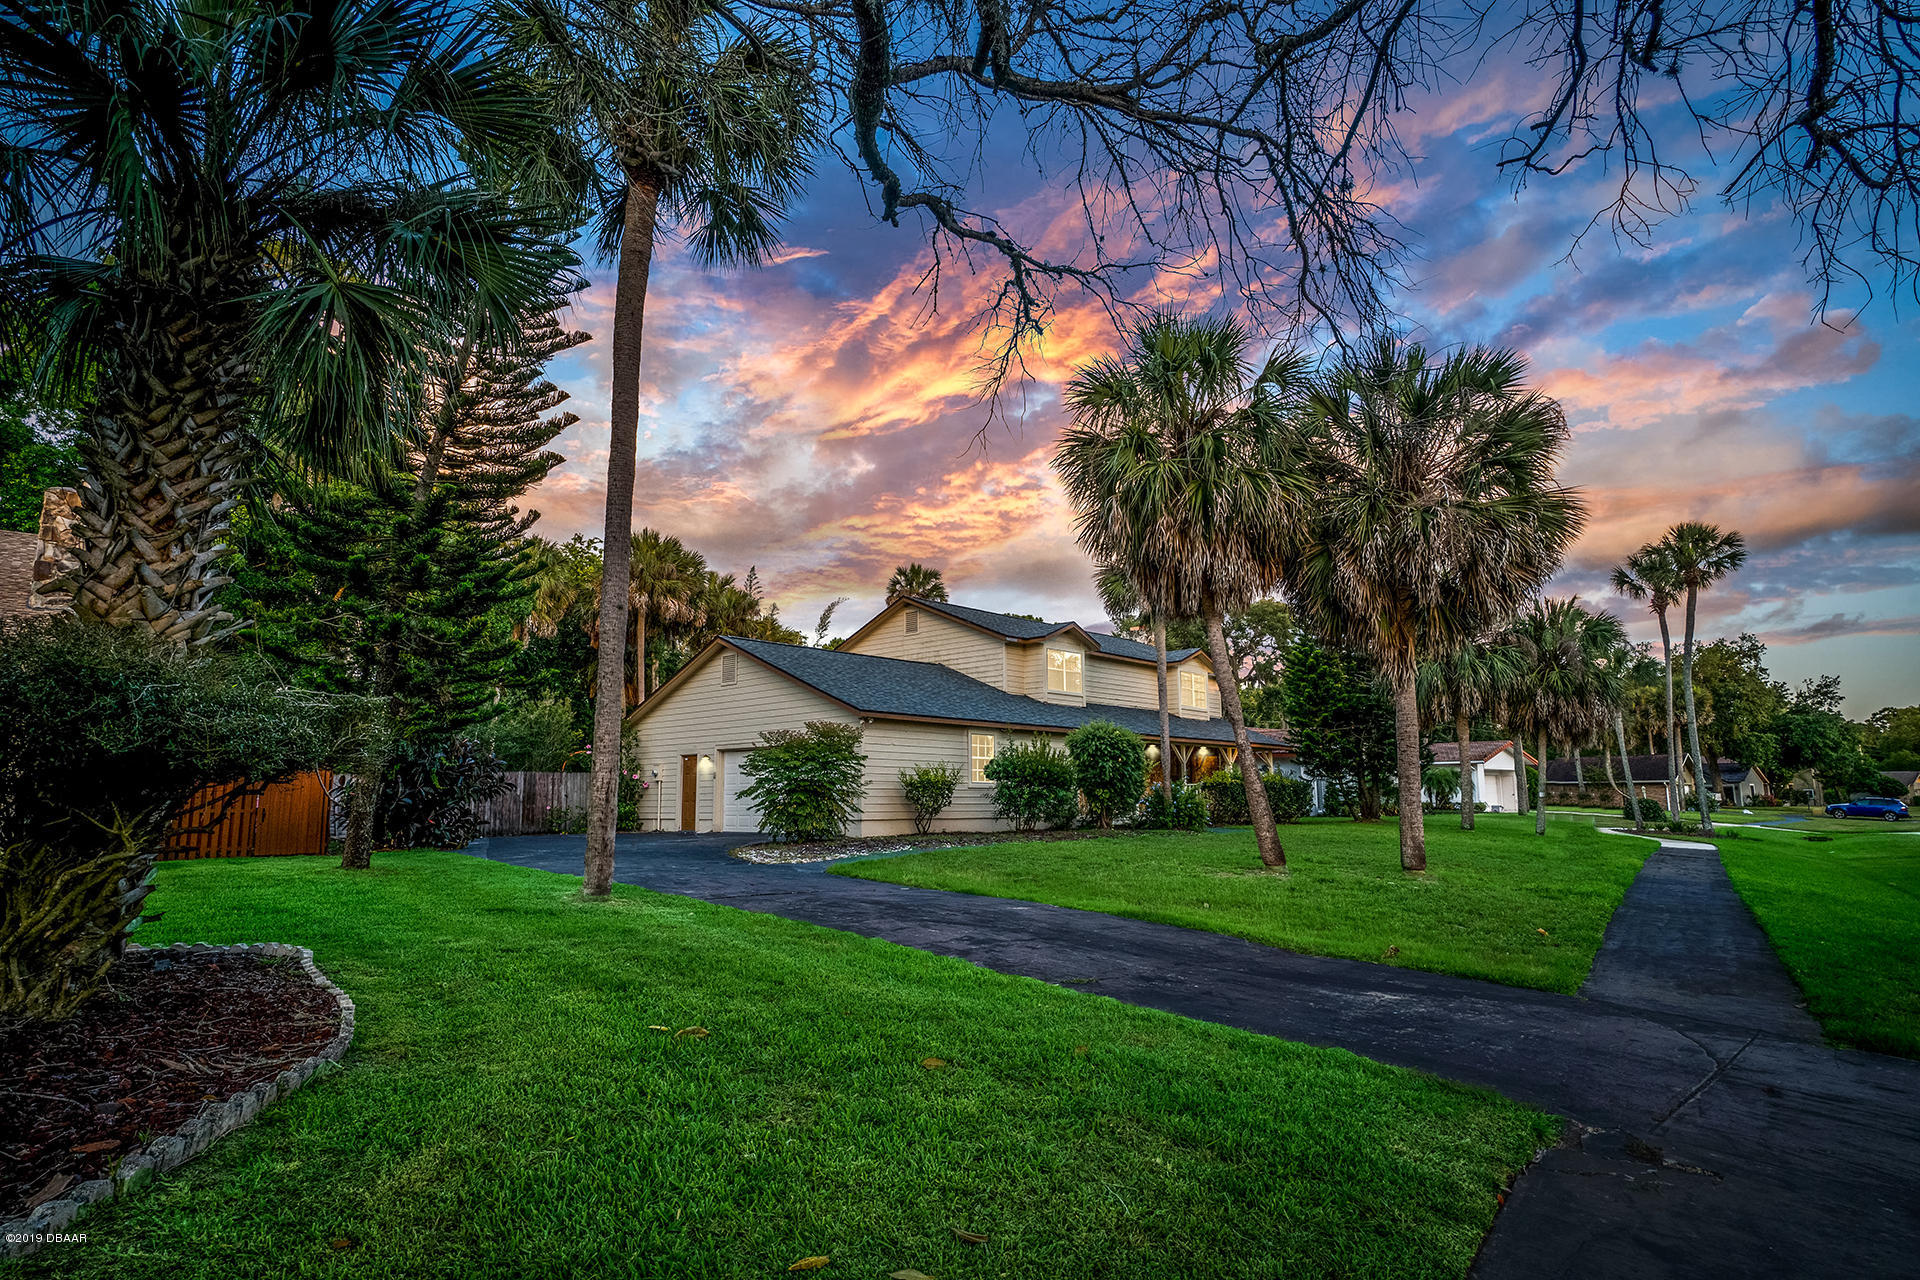 509 Pelican Bay Drive, South Daytona, Florida